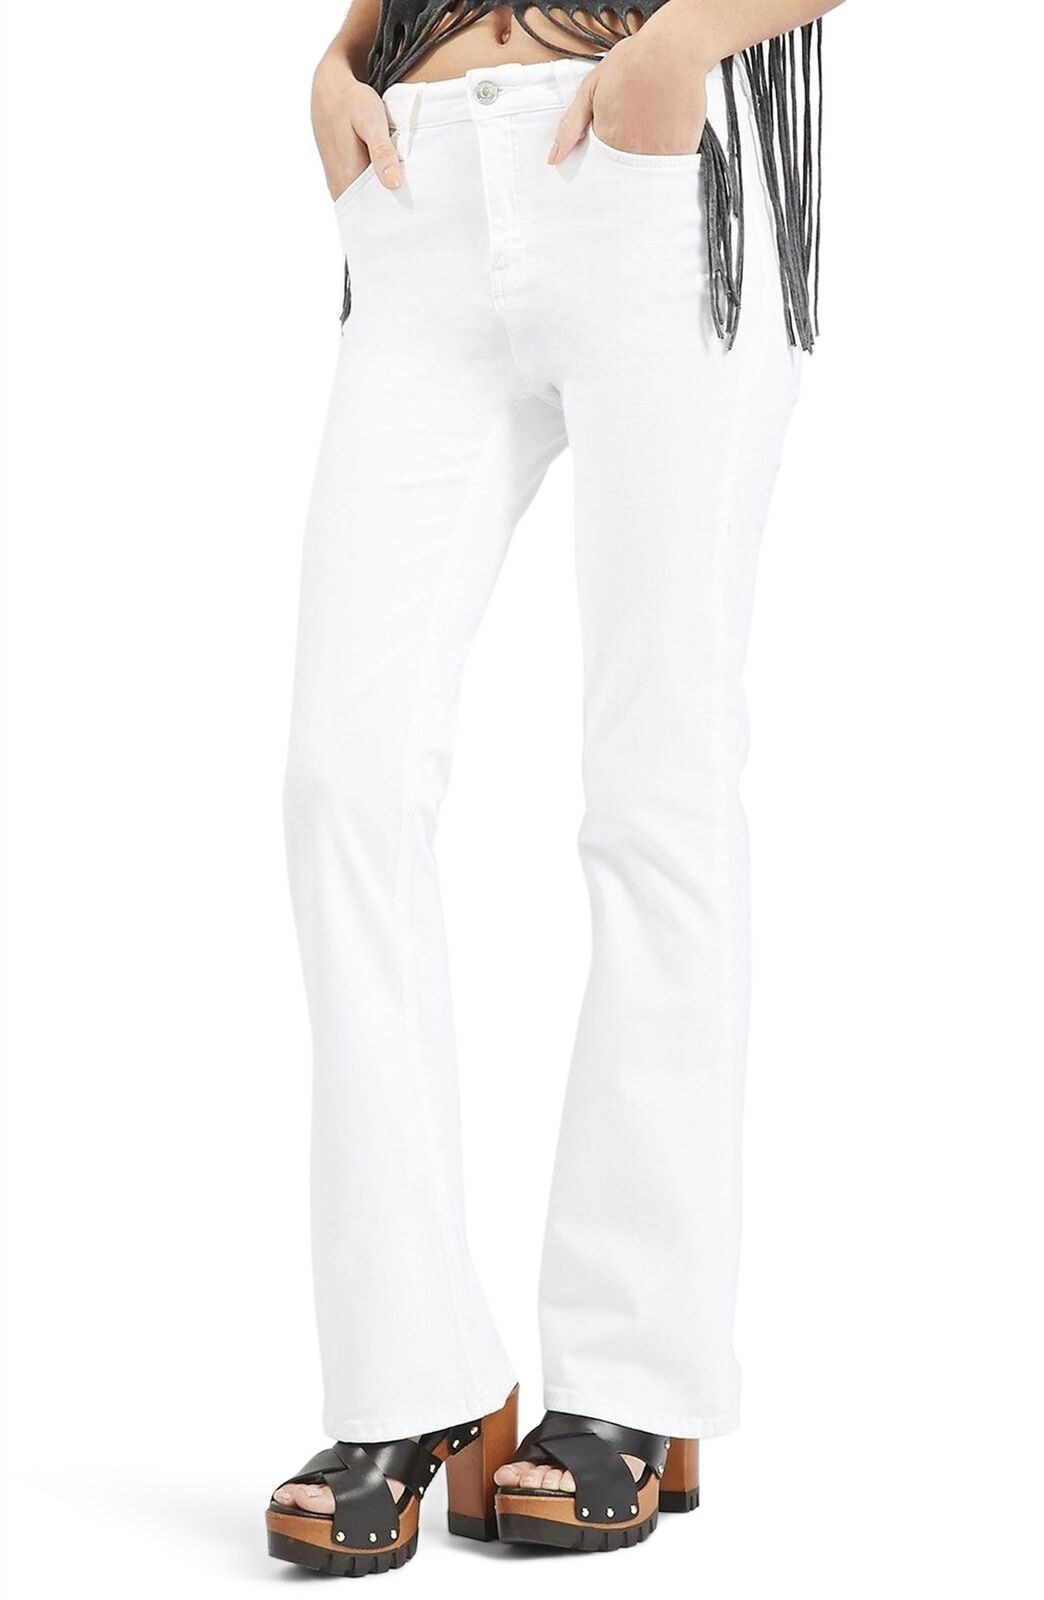 Topshop Moto Jamie Flare Jeans High Waisted Stretch Flare White Sz. 6 US (27)